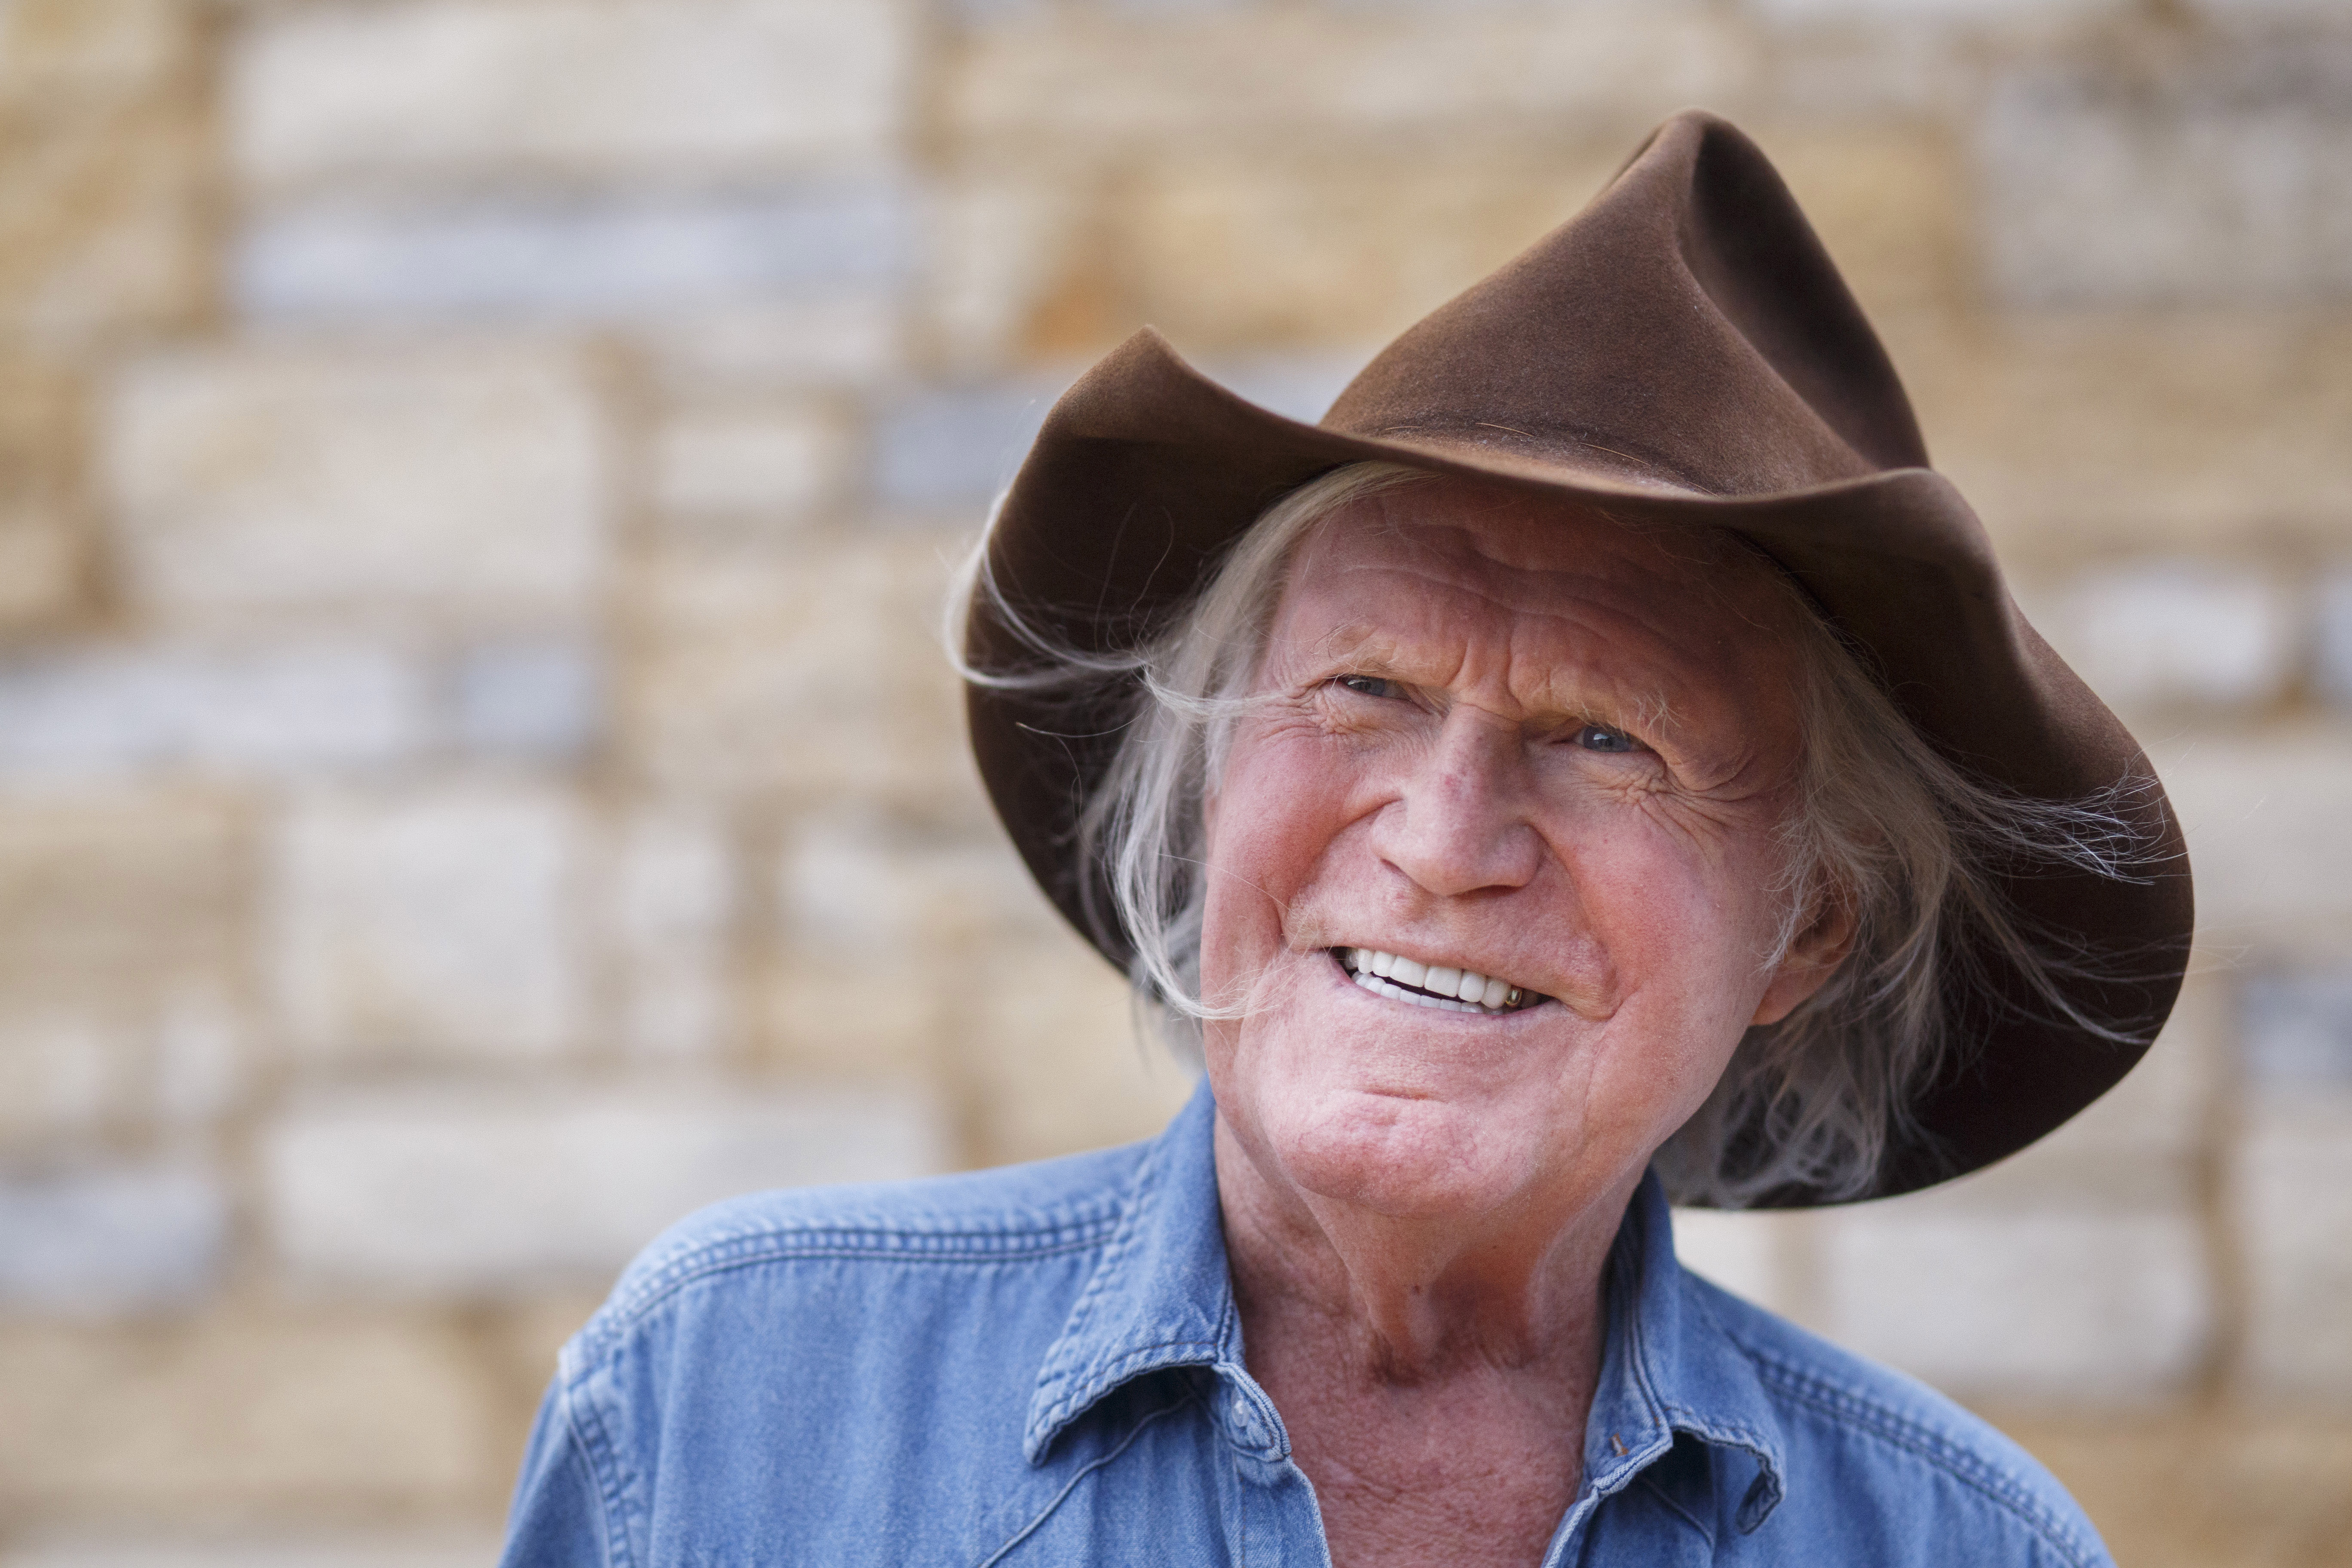 Billy Joe Shaver, who died Wednesday at 81, was considered the father of outlaw country music. MUST CREDIT: Photo for The Washington Post by Michael Stravato